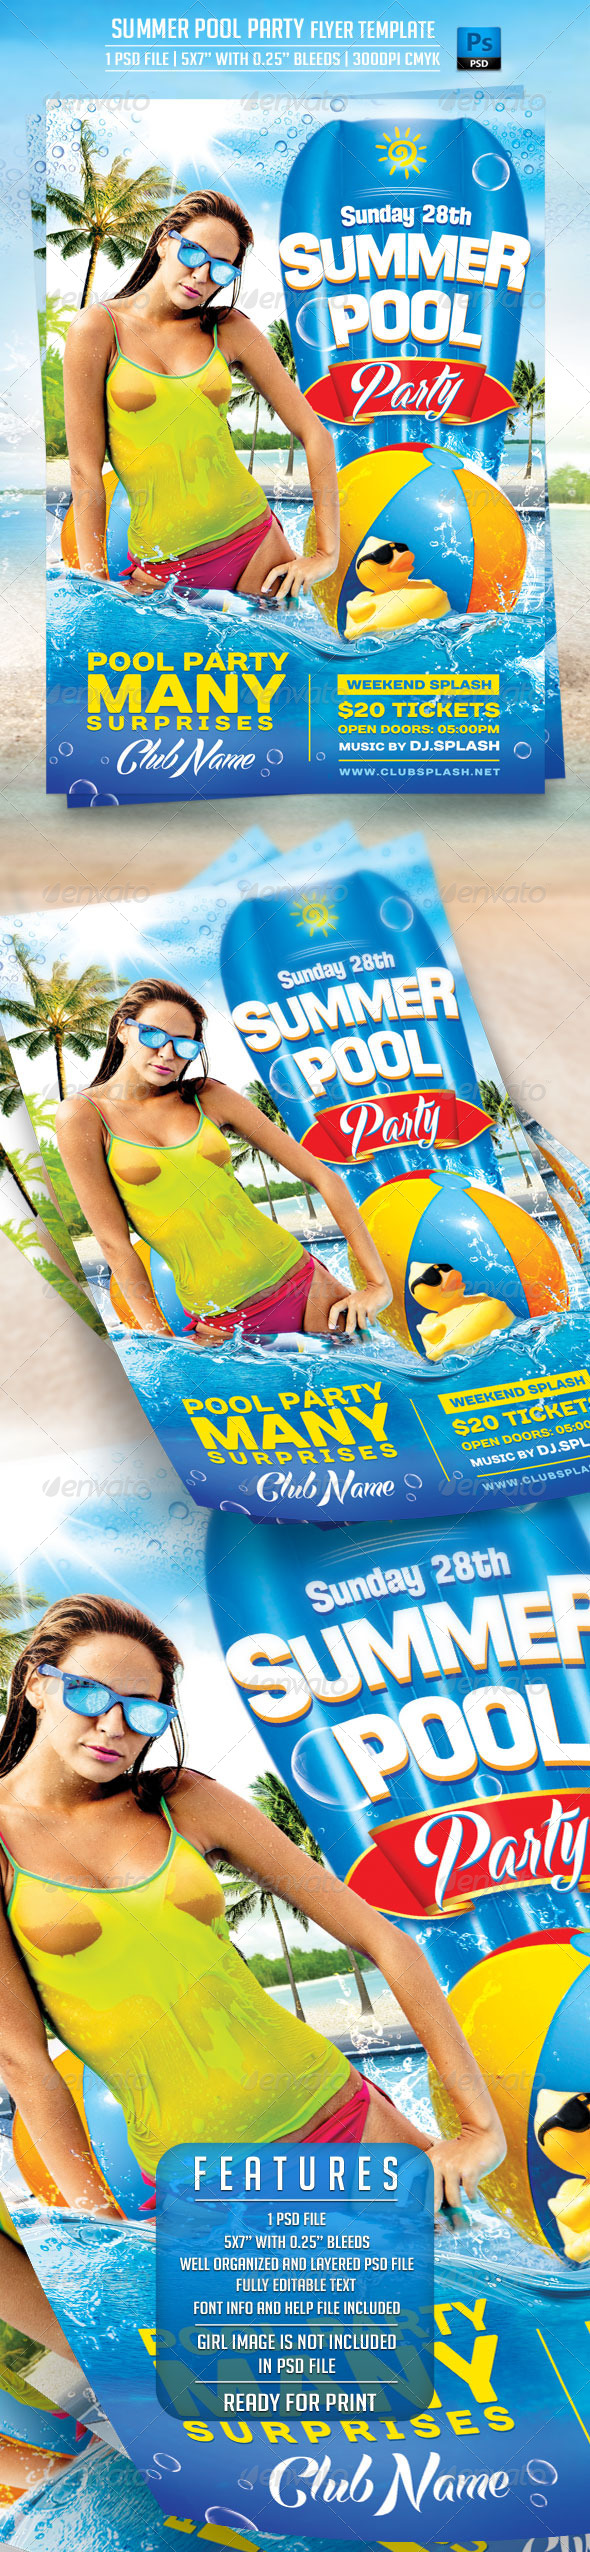 GraphicRiver Summer Pool Party Flyer Template 7989275